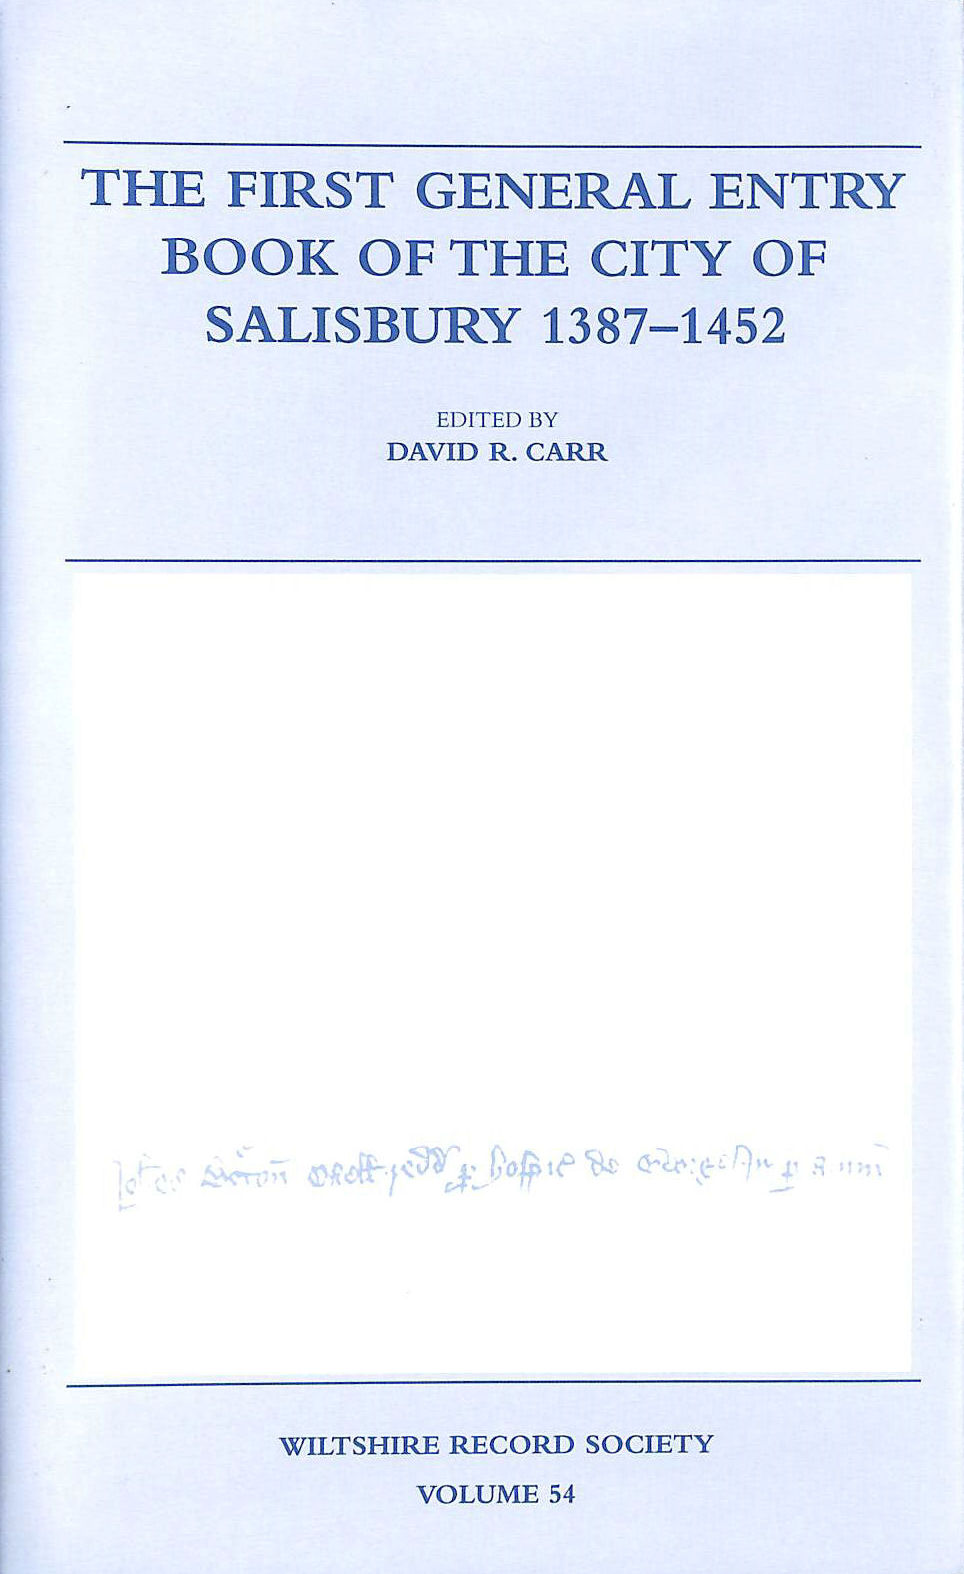 Image for The First General Entry Book of the City of Salisbury, 1387-1452 (Wiltshire Record Society S.)